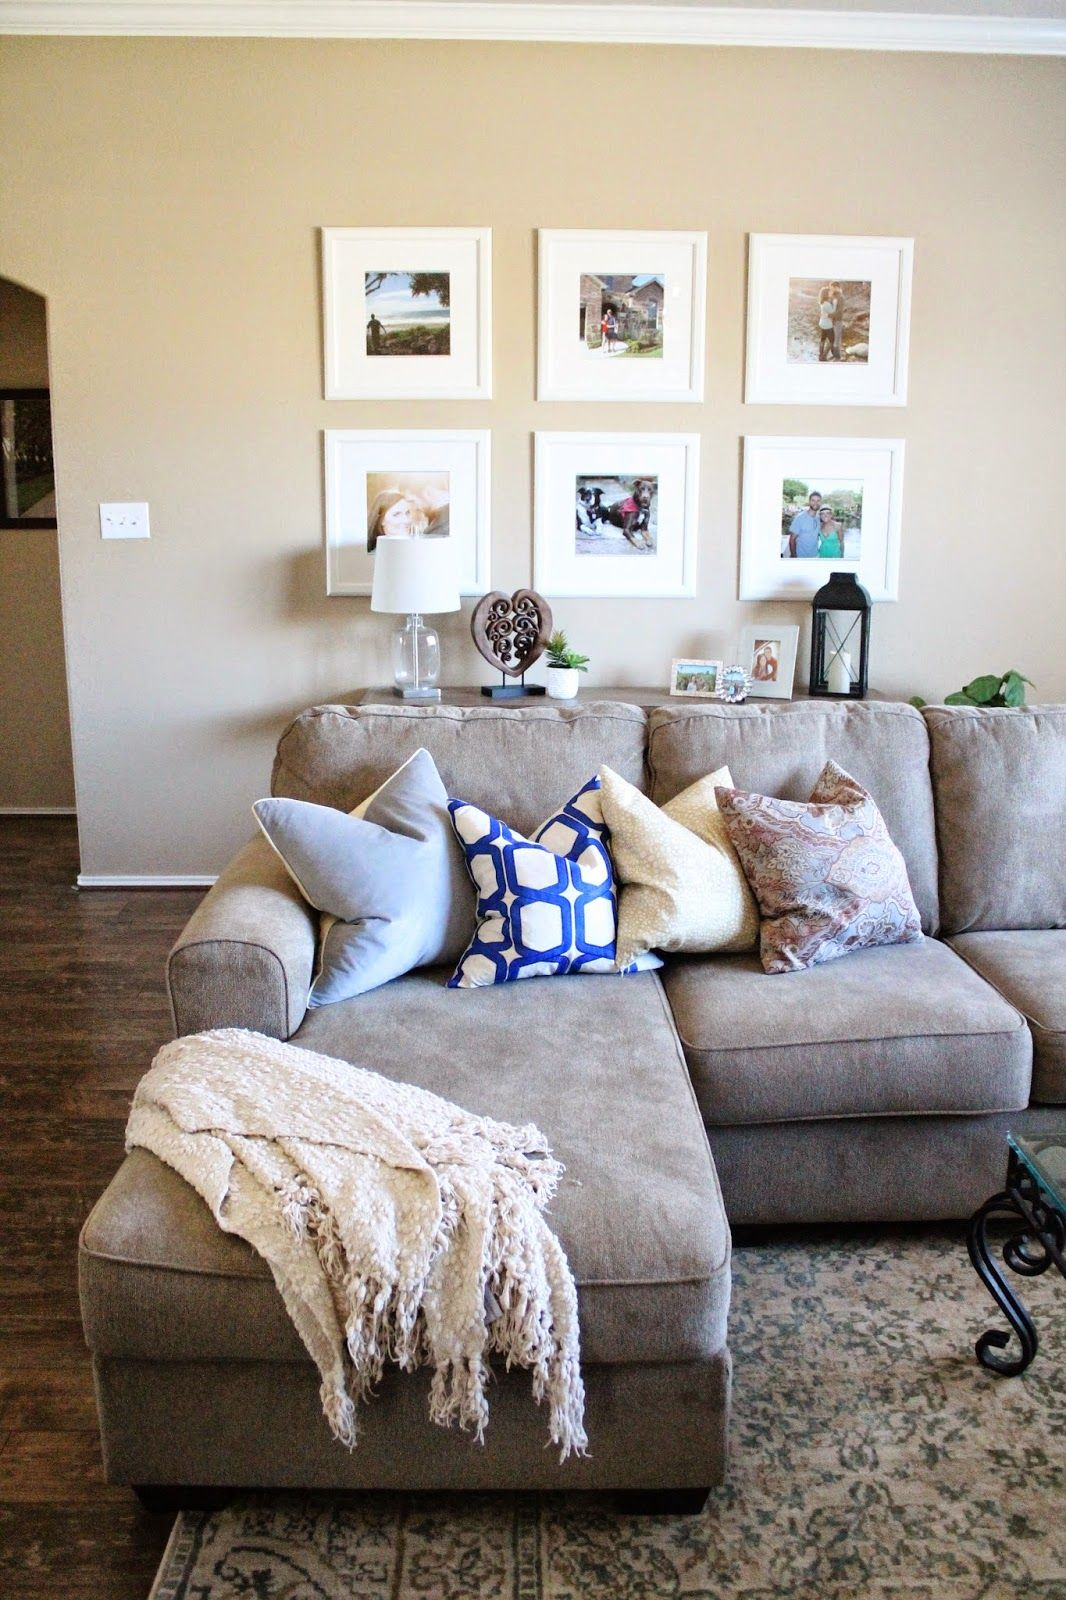 Cozy Living Room Space || Ikea Frames || Home Depot Rug || Ashley Furniture  Sofa